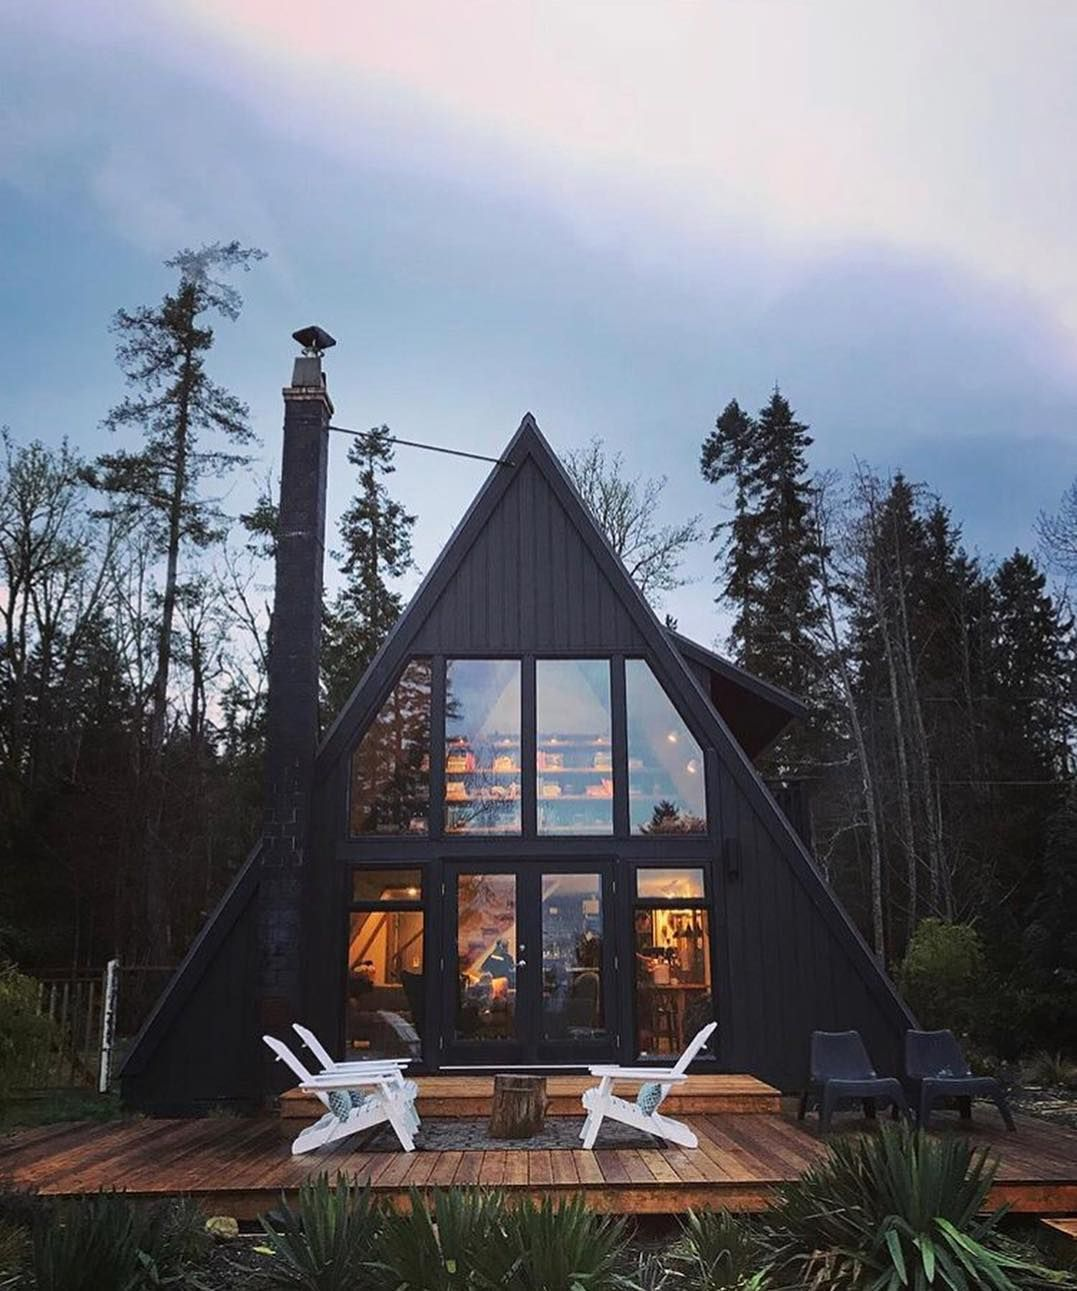 Groovy Book Of Cabins On Instagram Kysthusaframe Download Free Architecture Designs Embacsunscenecom